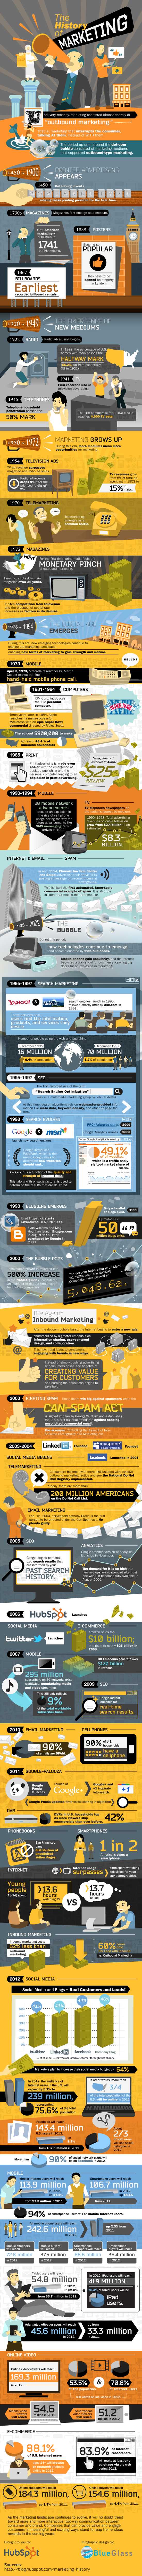 HubSpot's The History of Marketing Infographic